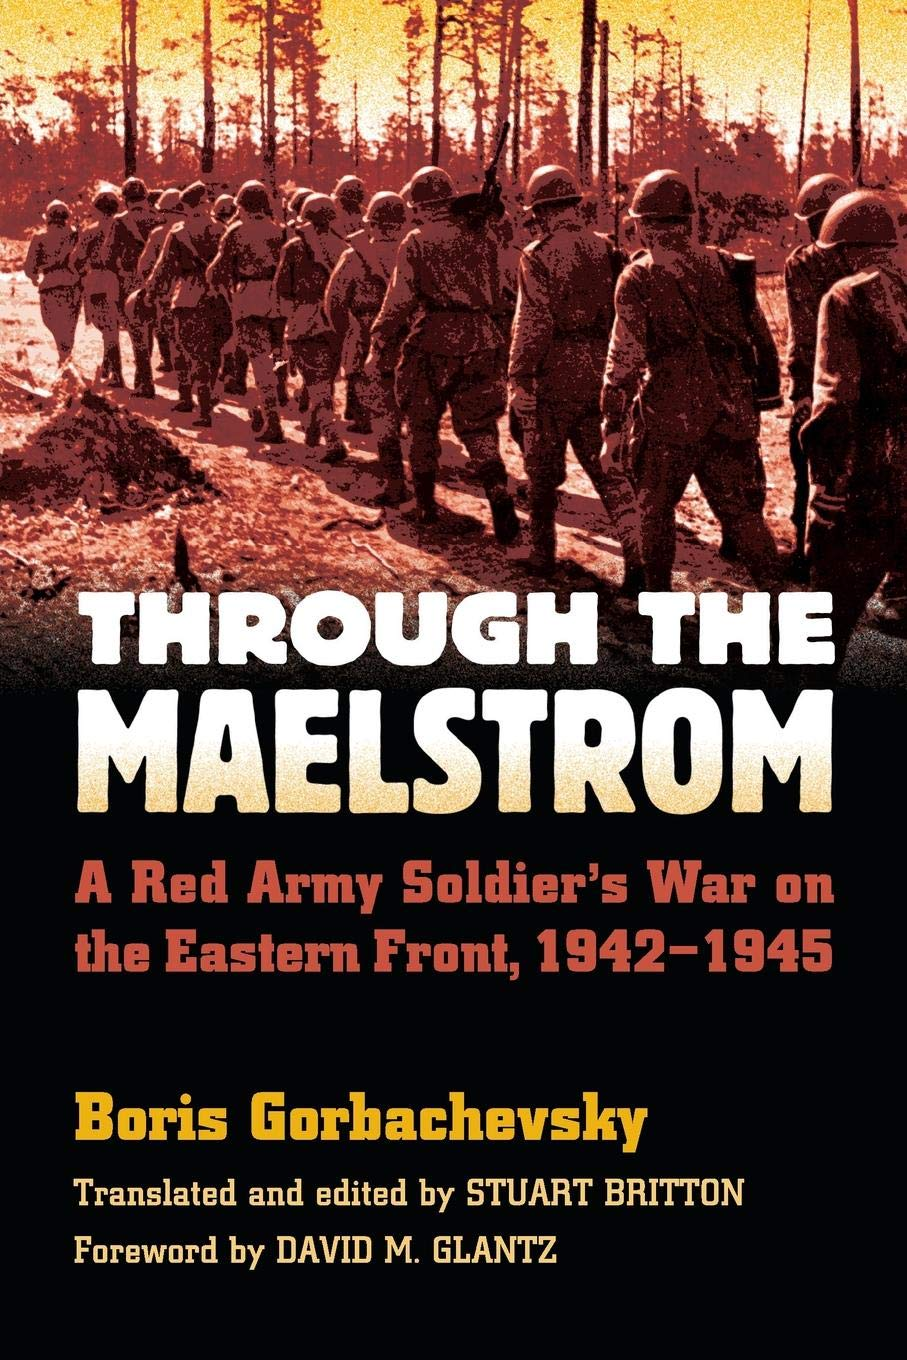 Through the Maelstrom: A Red Army Soldier's War on the Eastern Front, 1942-1945 (Modern War Studies) PDF